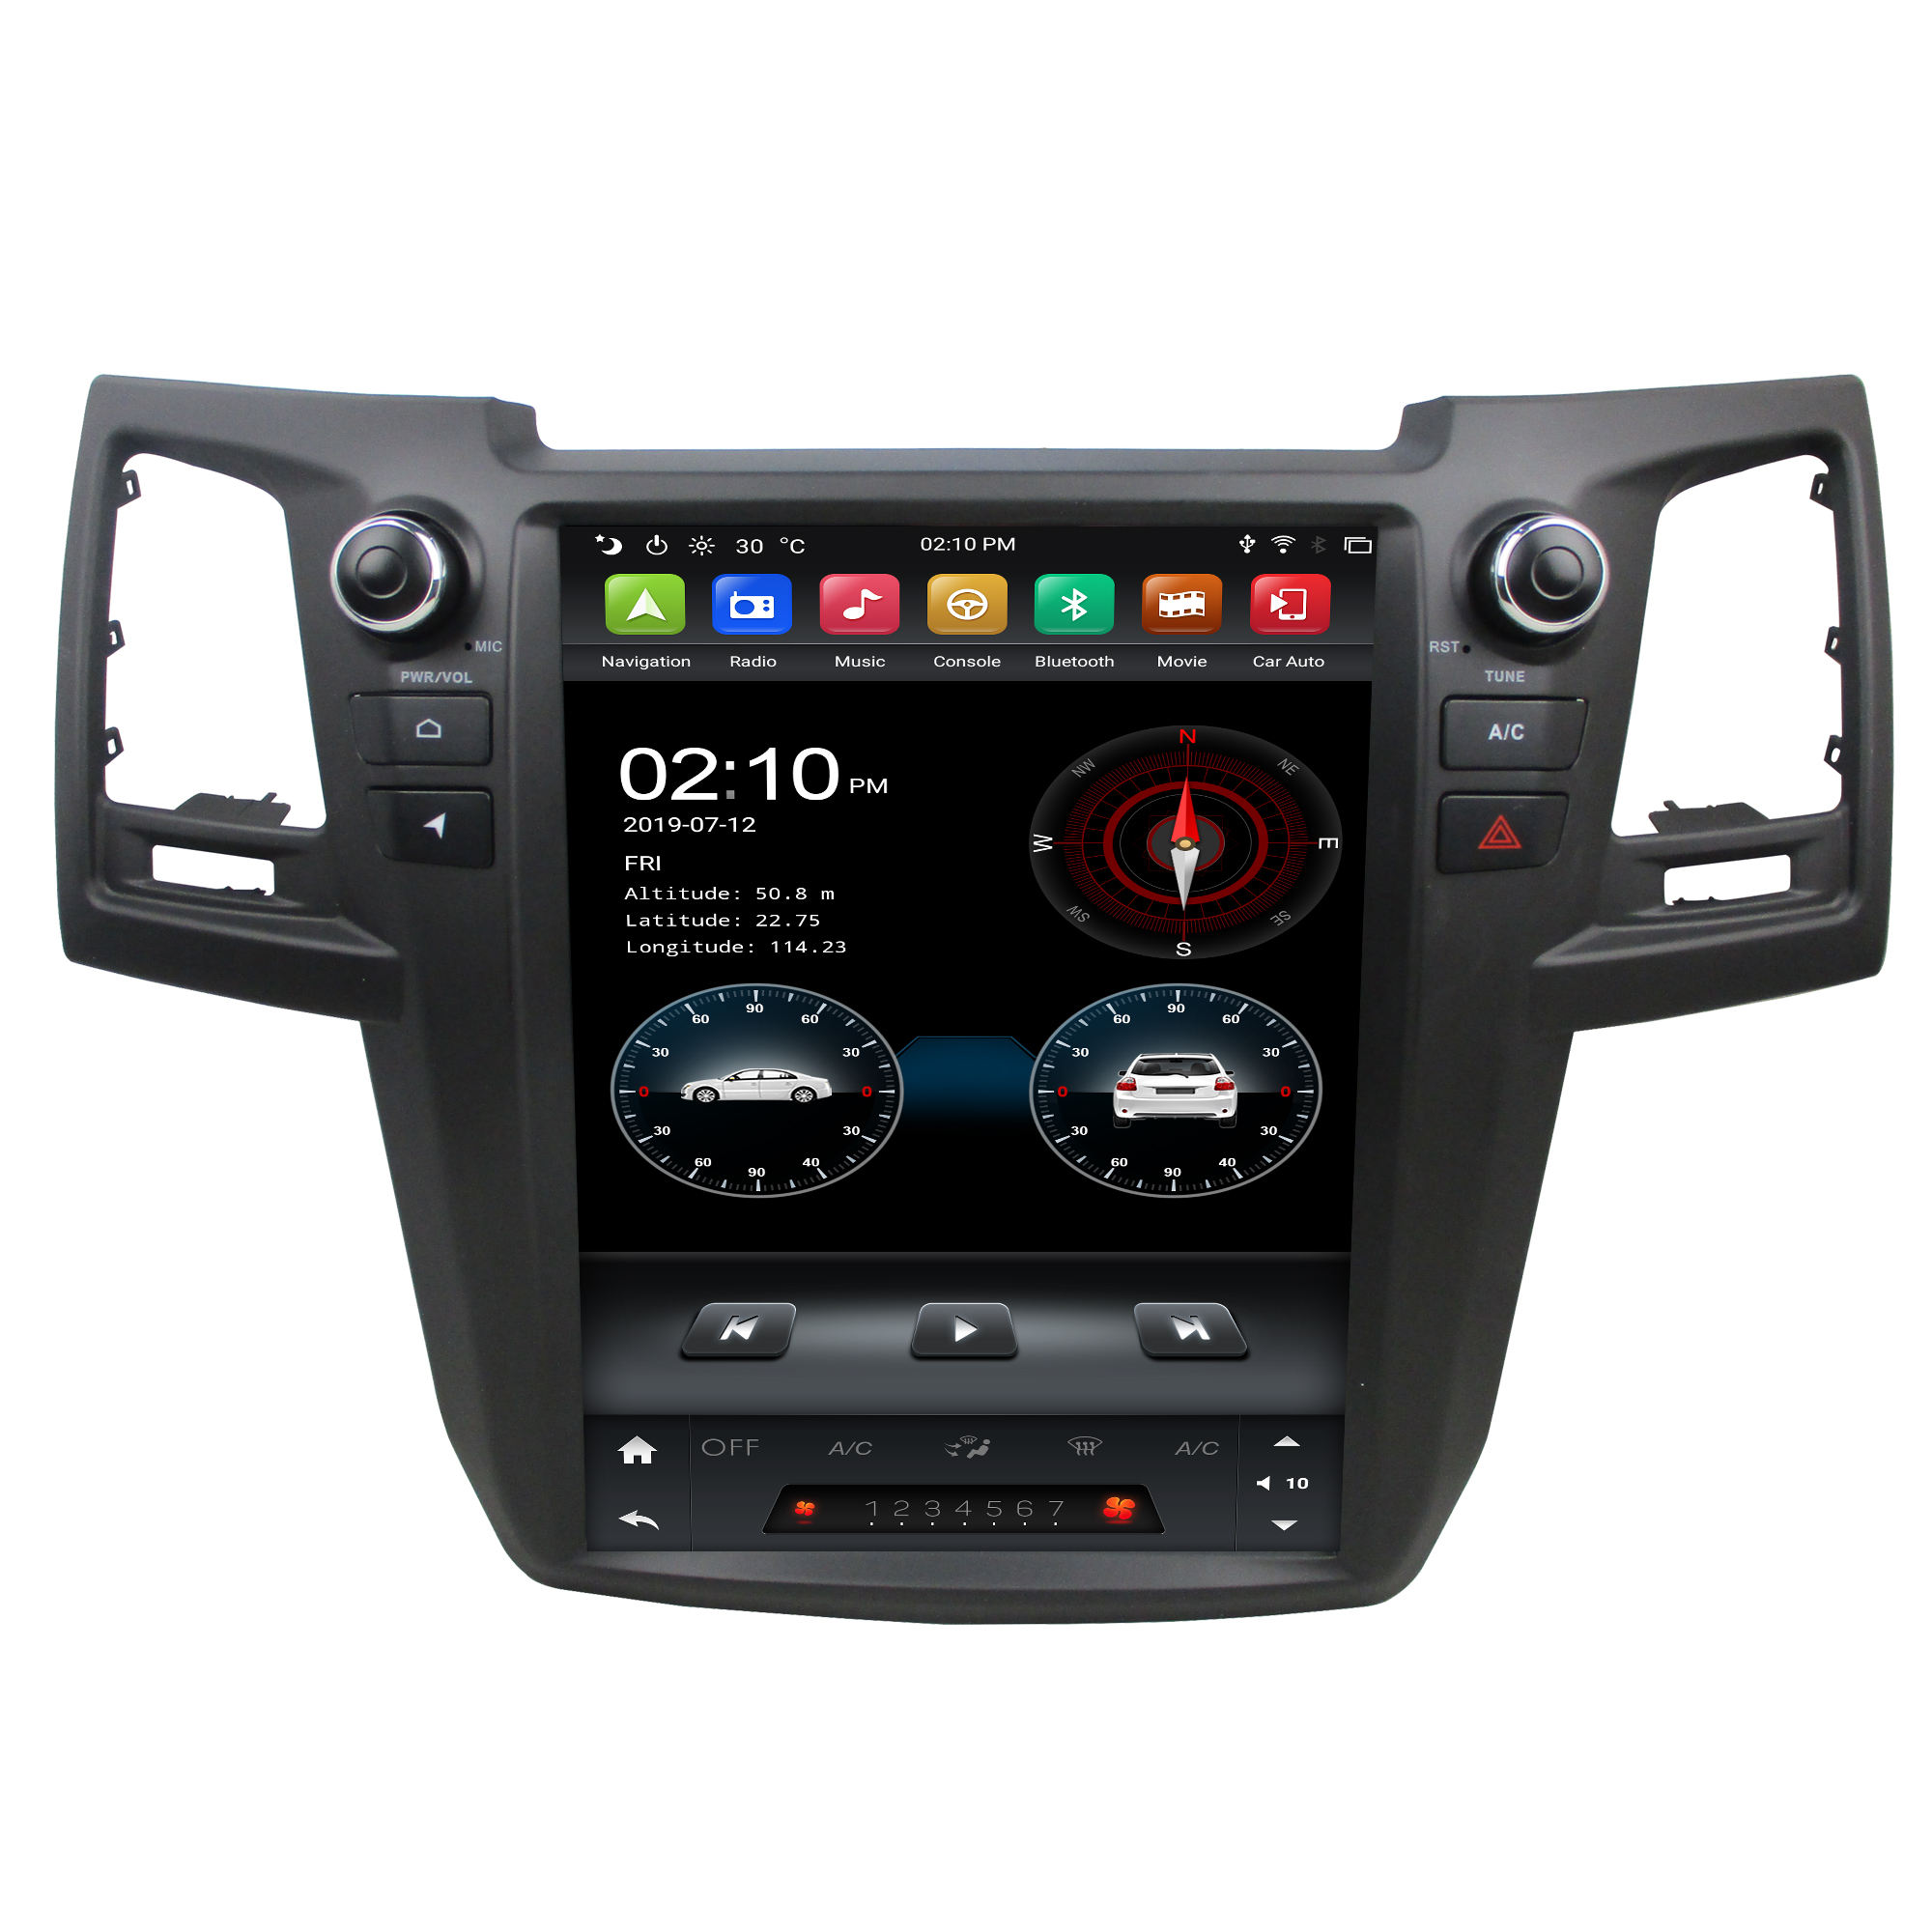 KD-12104 12.1inch Android 9 PX6 car video for Fortuner 2004 2005 2006 2007 2008 2009 2010 2011 2012 2013 2014 2015